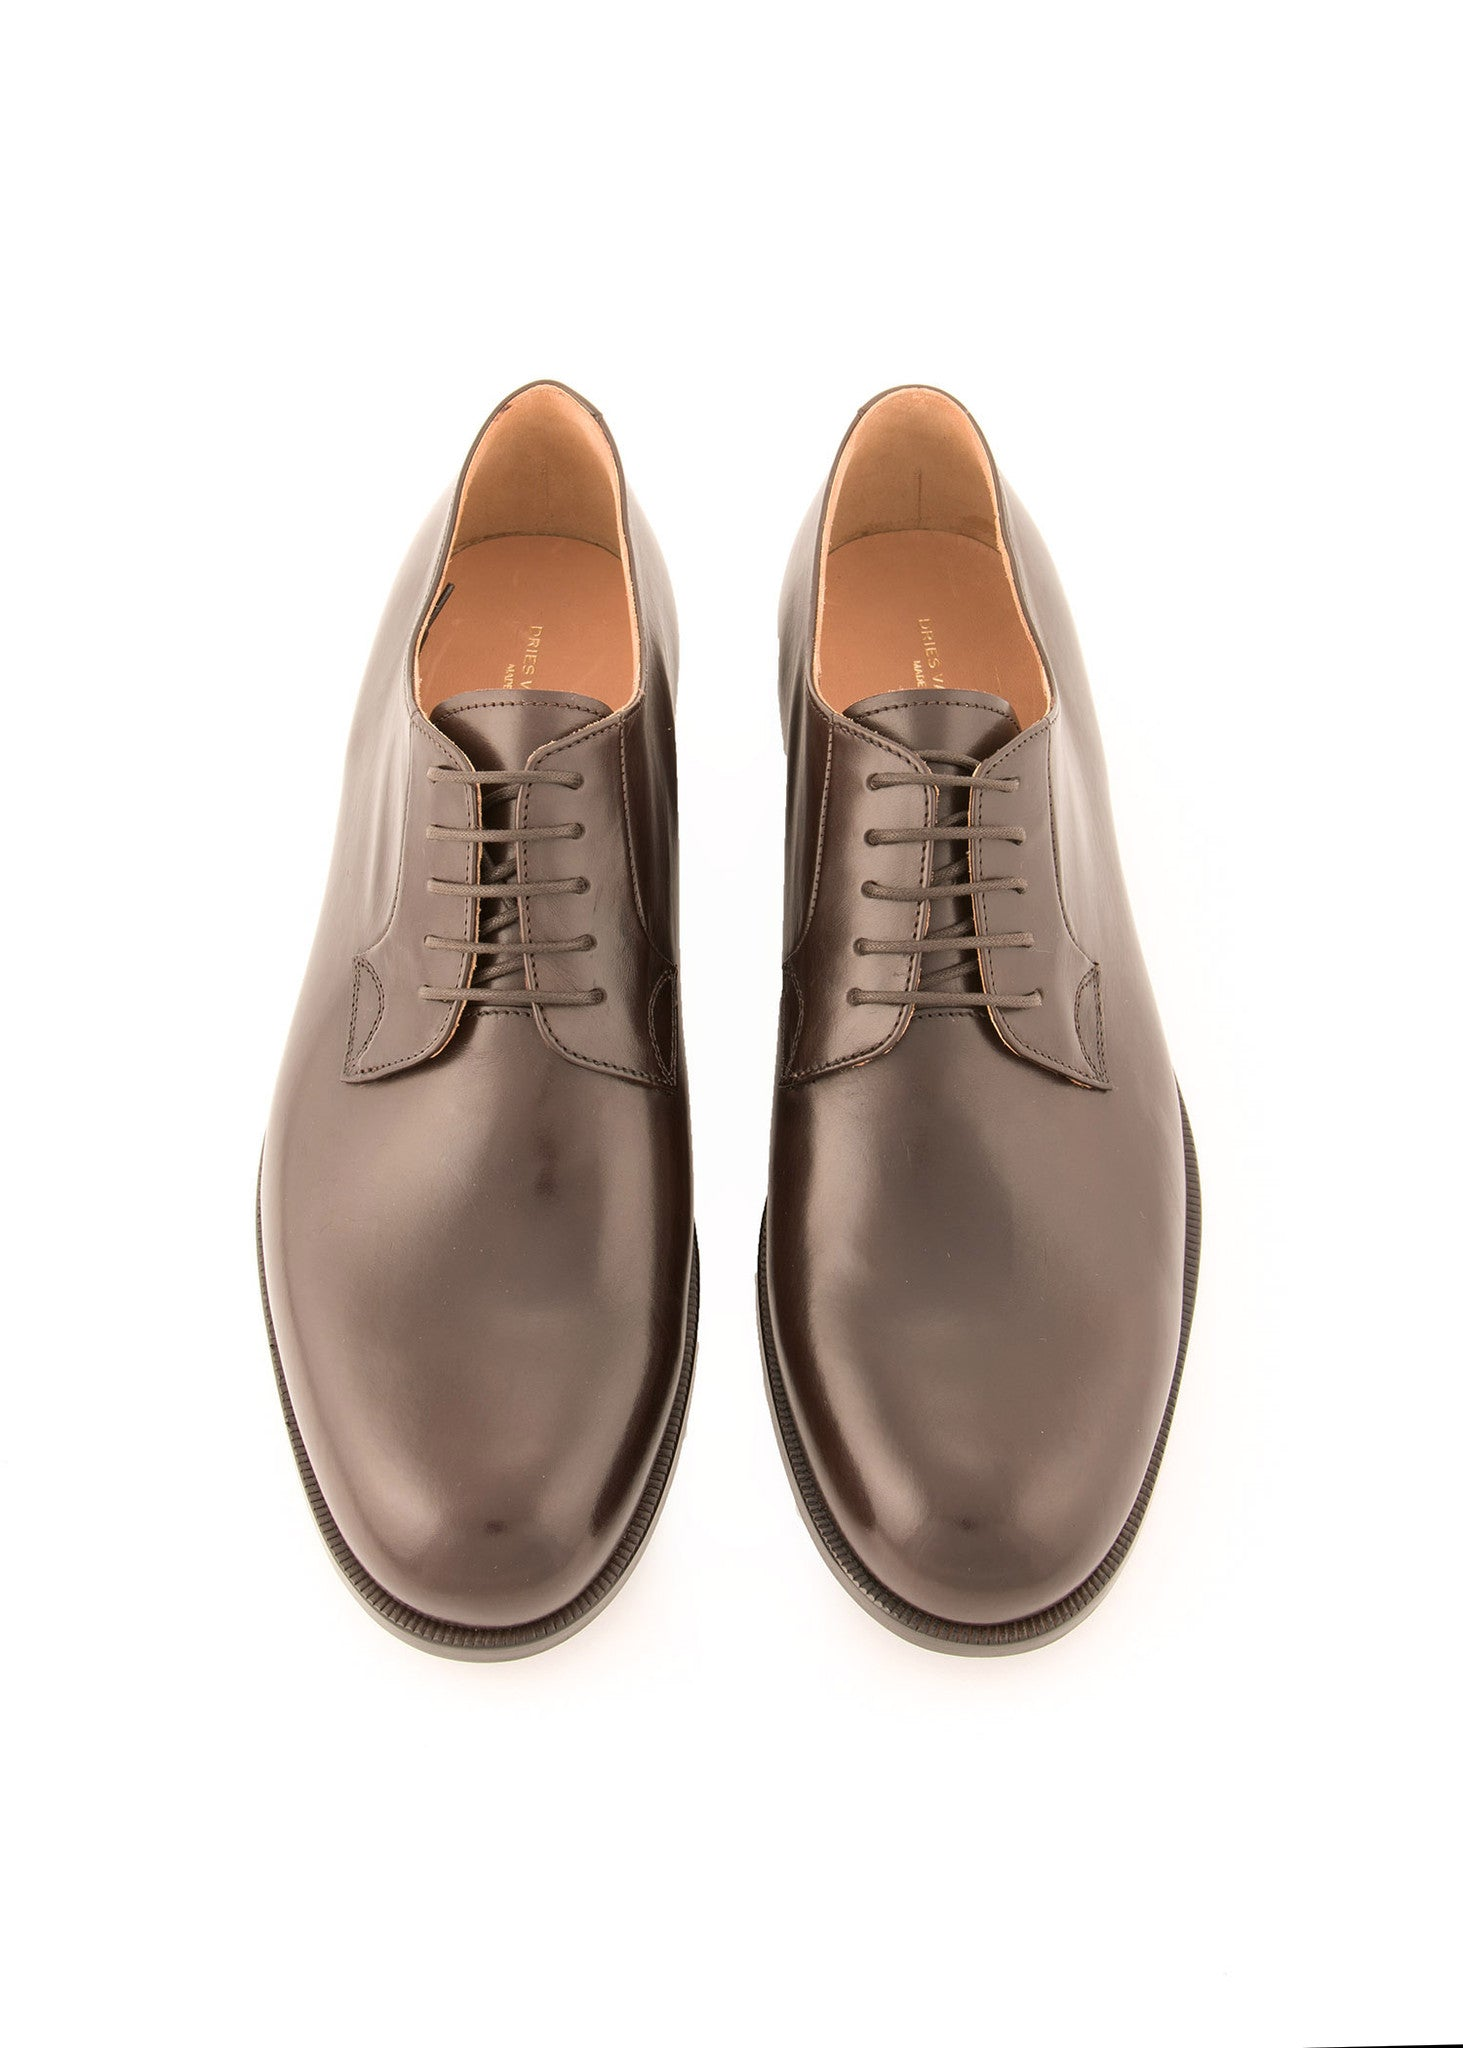 "Chaussures style ""derby"" marrons en cuir de veau